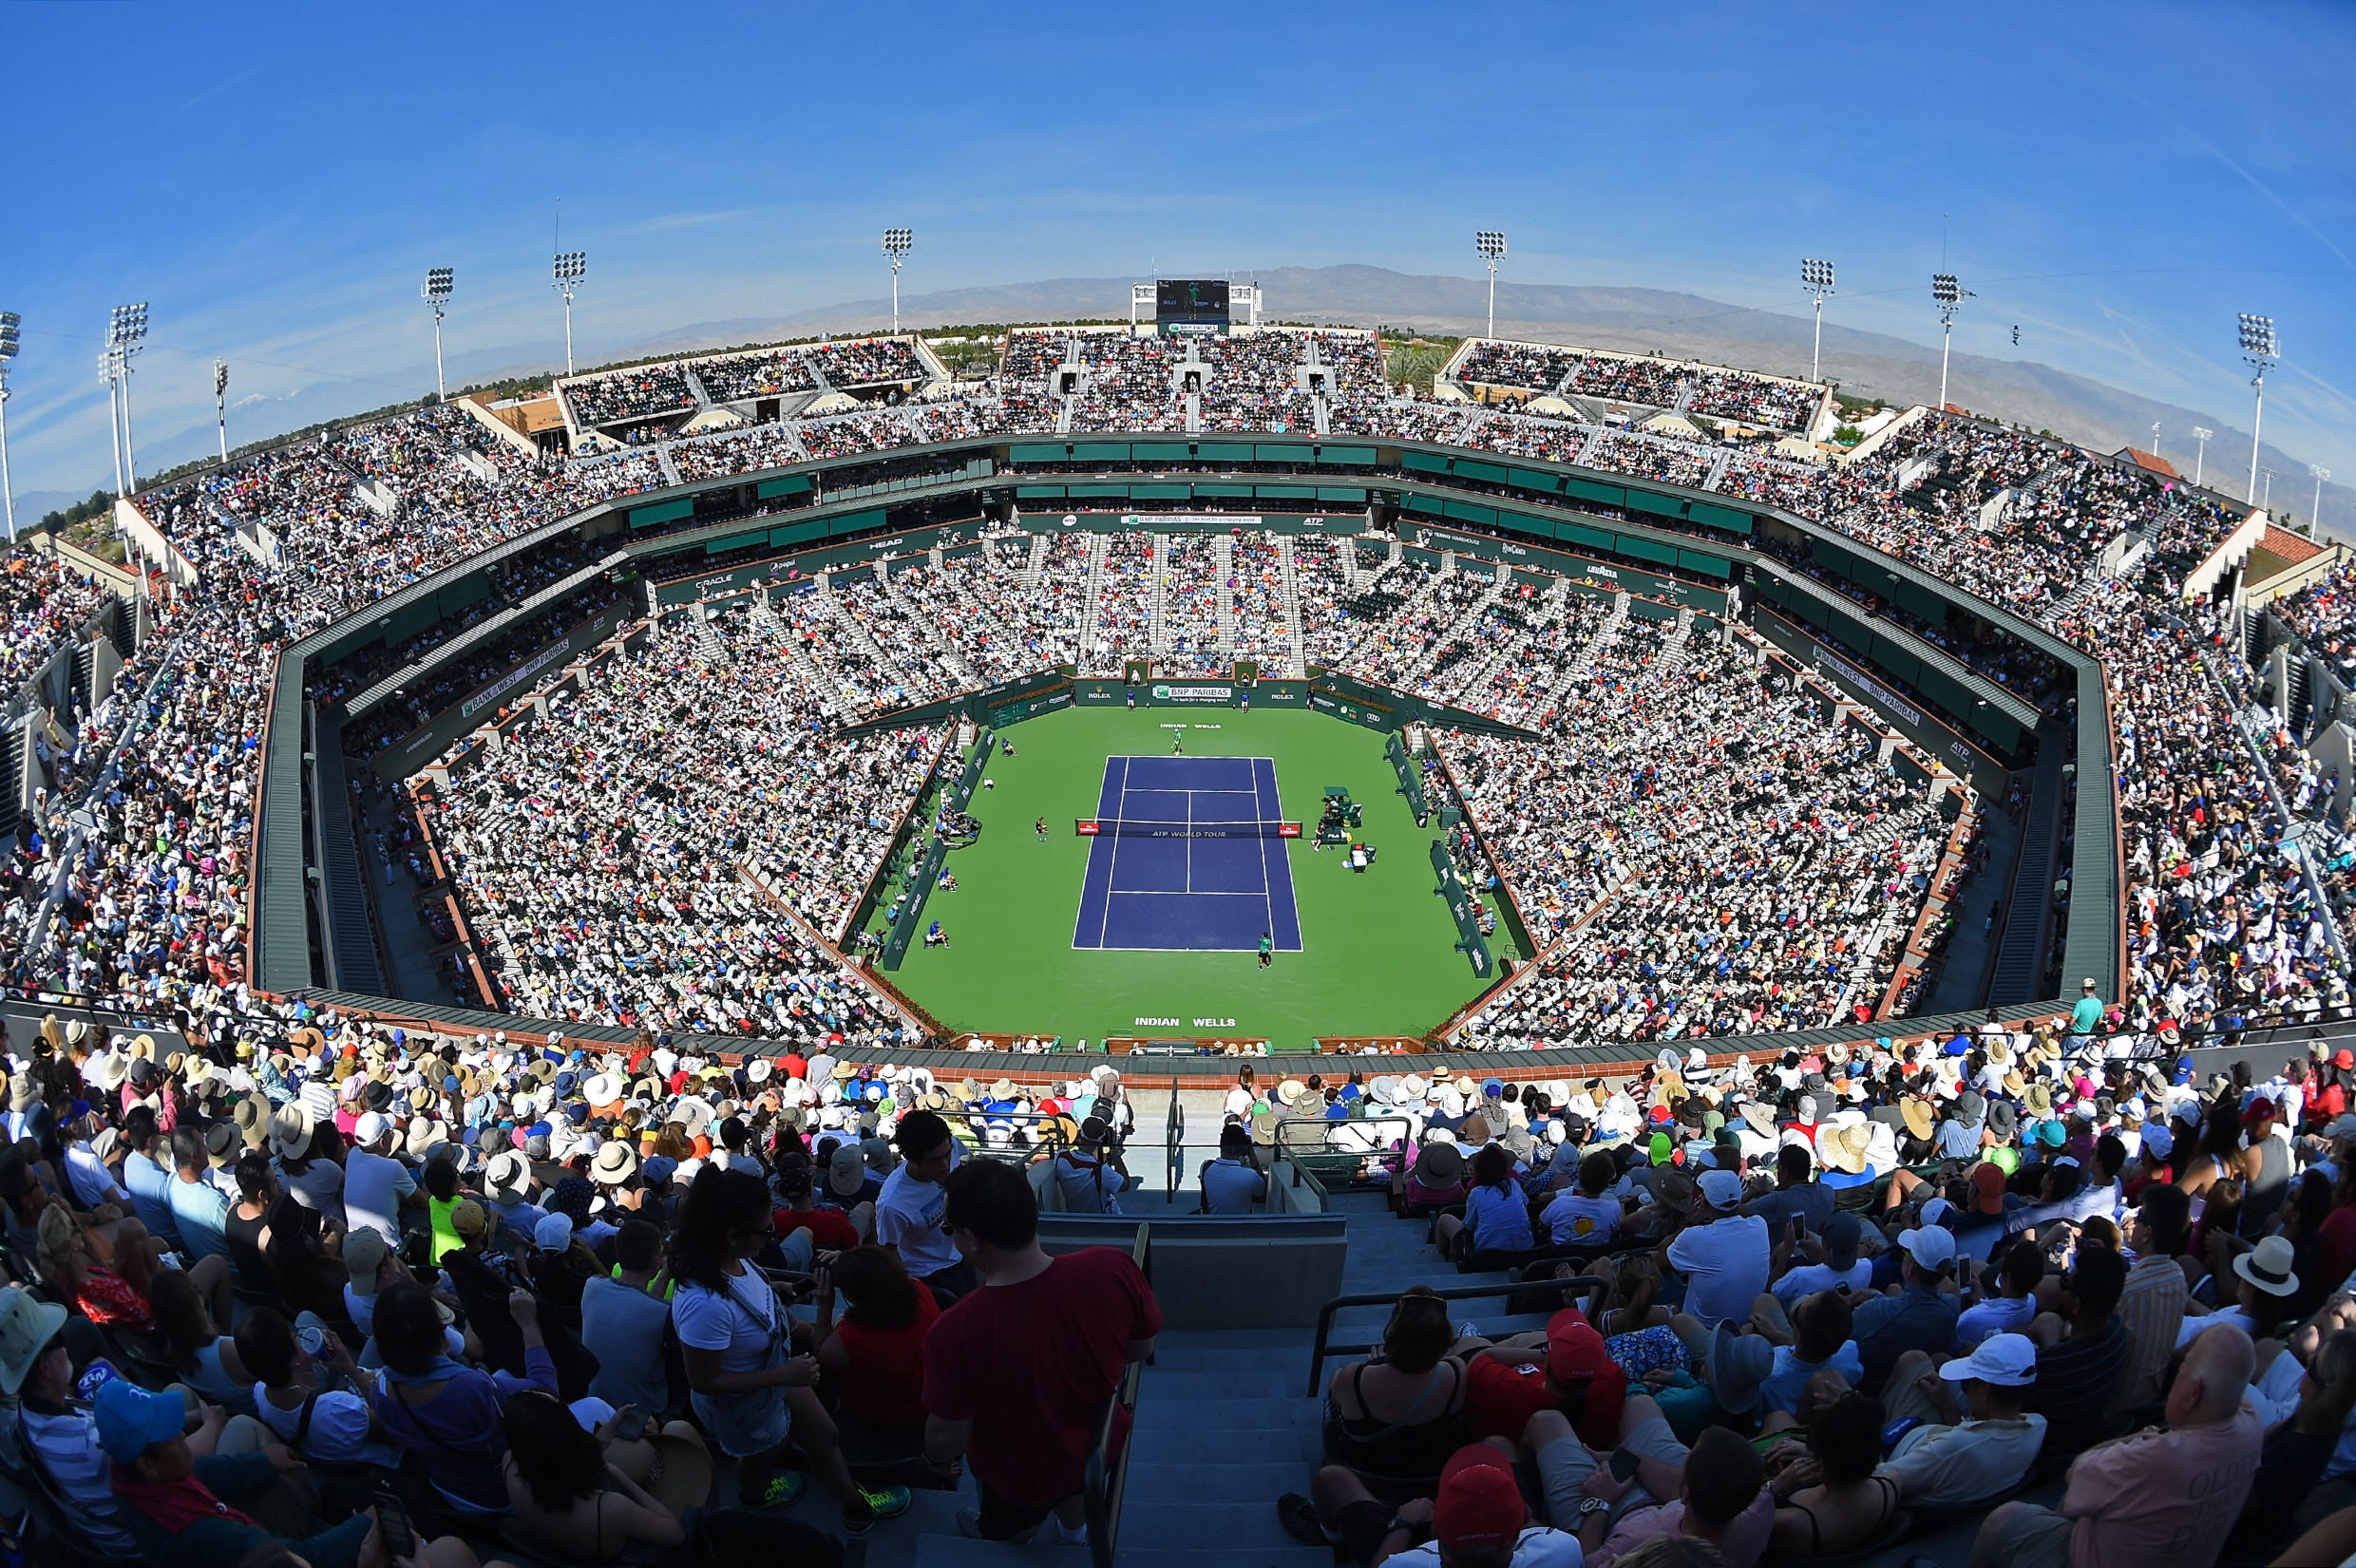 Opinion: Indian Wells cancellation could be turning point for sports and coronavirus